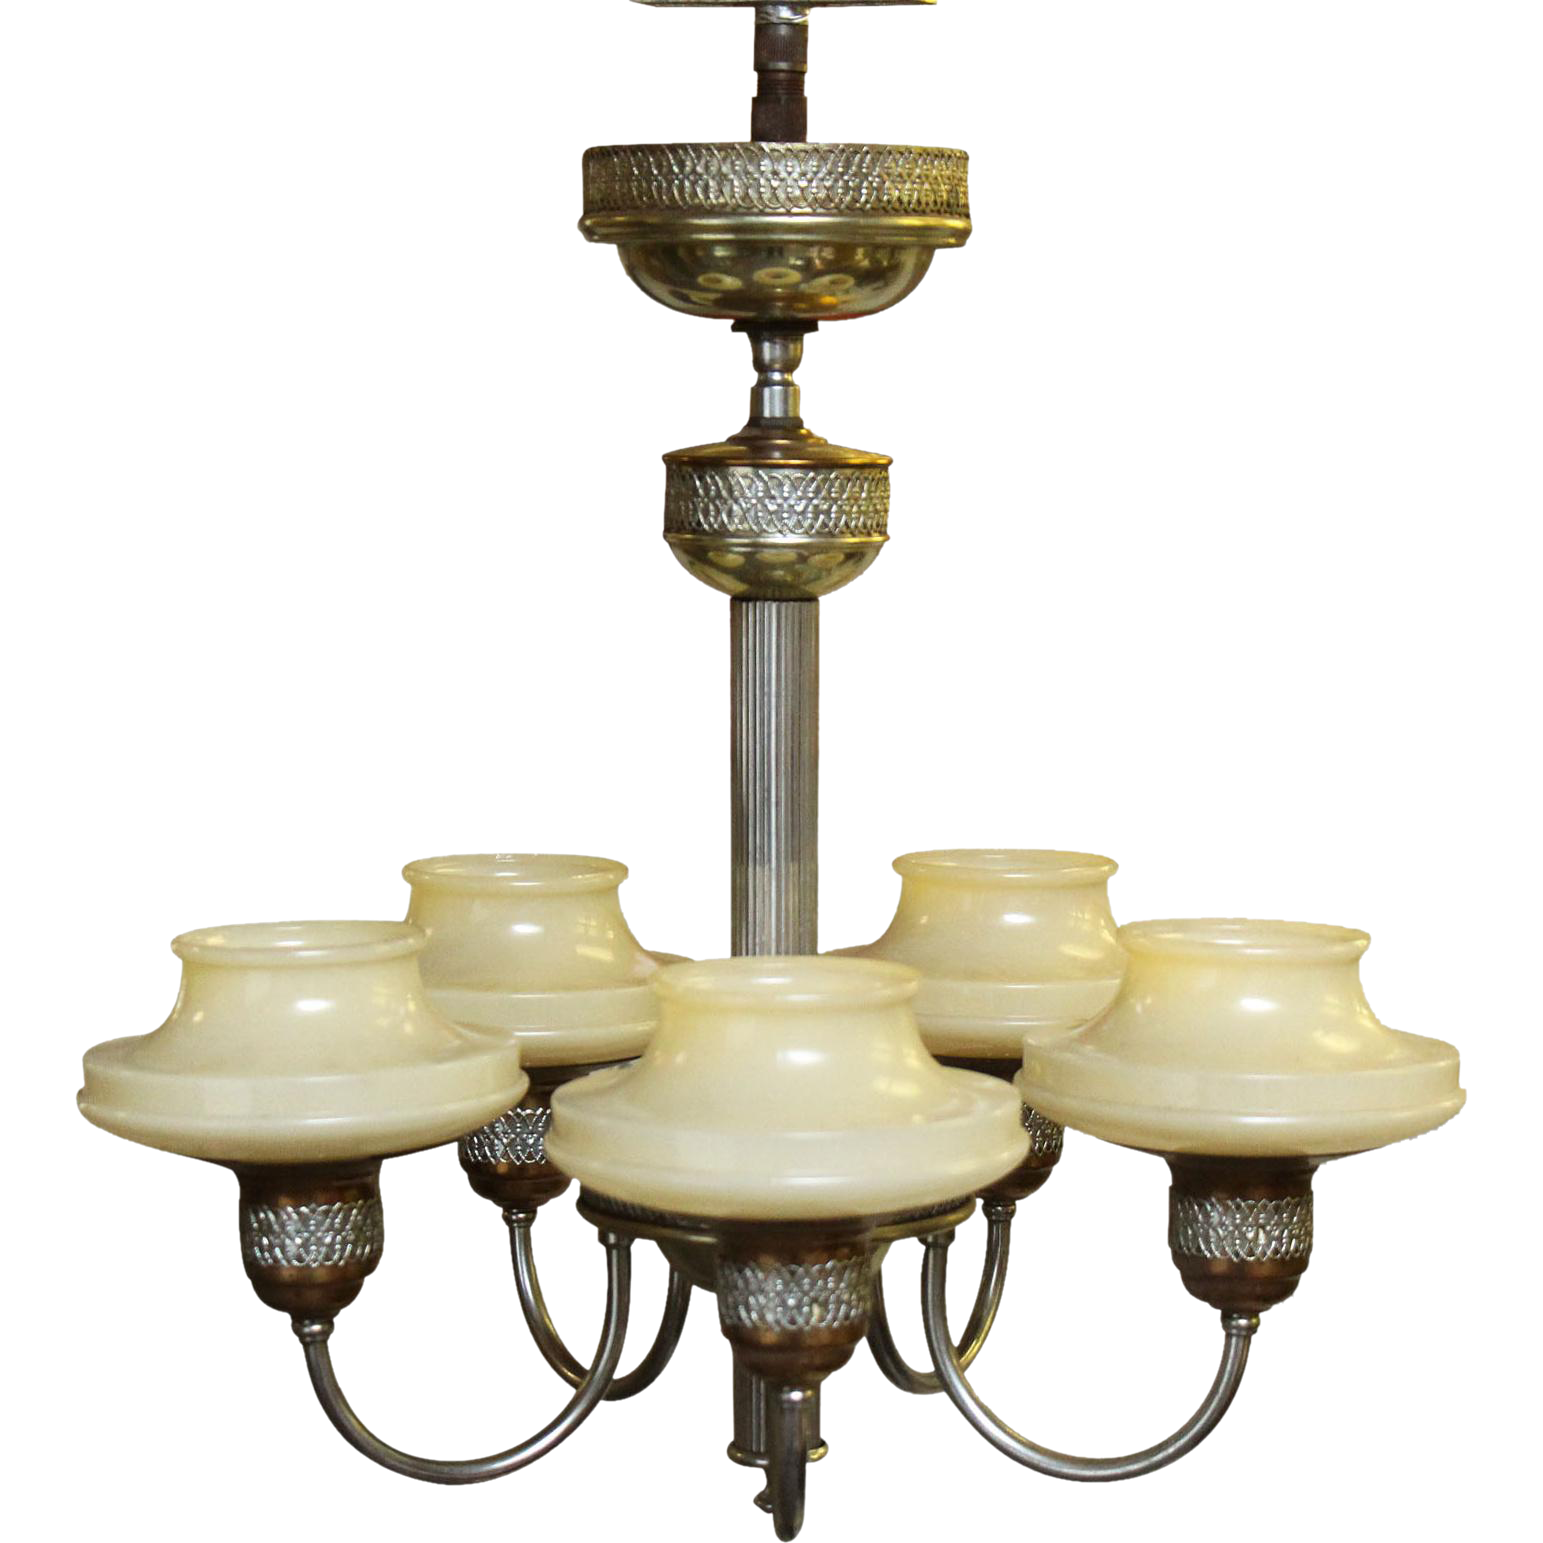 Pretty five arm ornate chandelier with glass shades